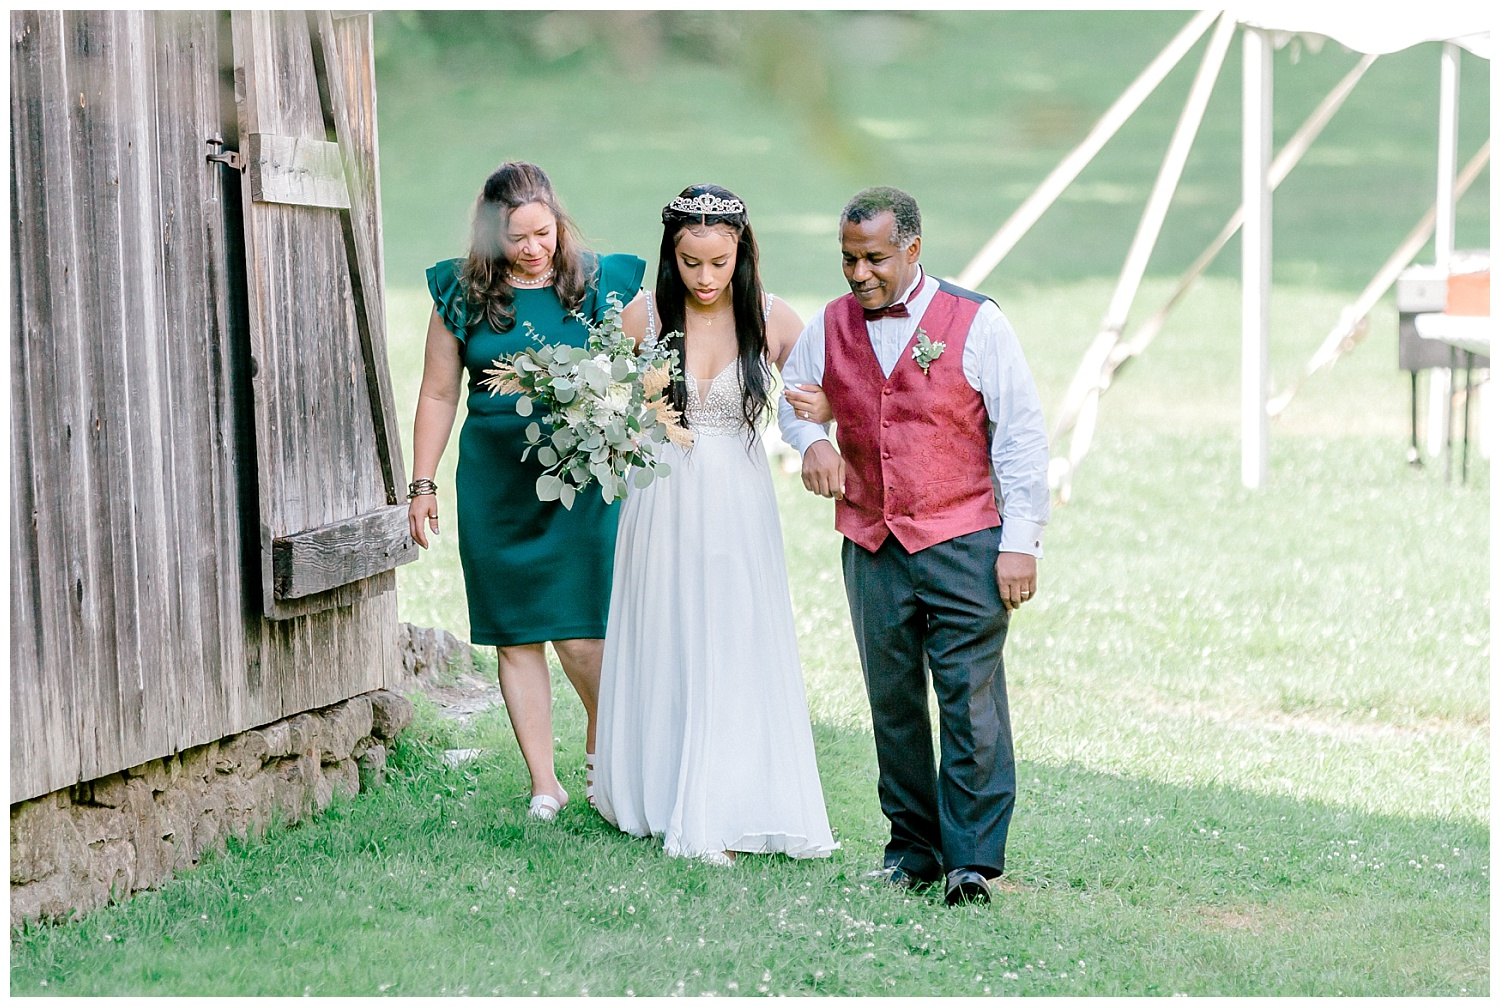 Olive green and white rustic barn wedding at burnside plantation in bethlehem pennsylvania by PA based destination wedding and lifestyle photographer Lytle photography (39).jpg